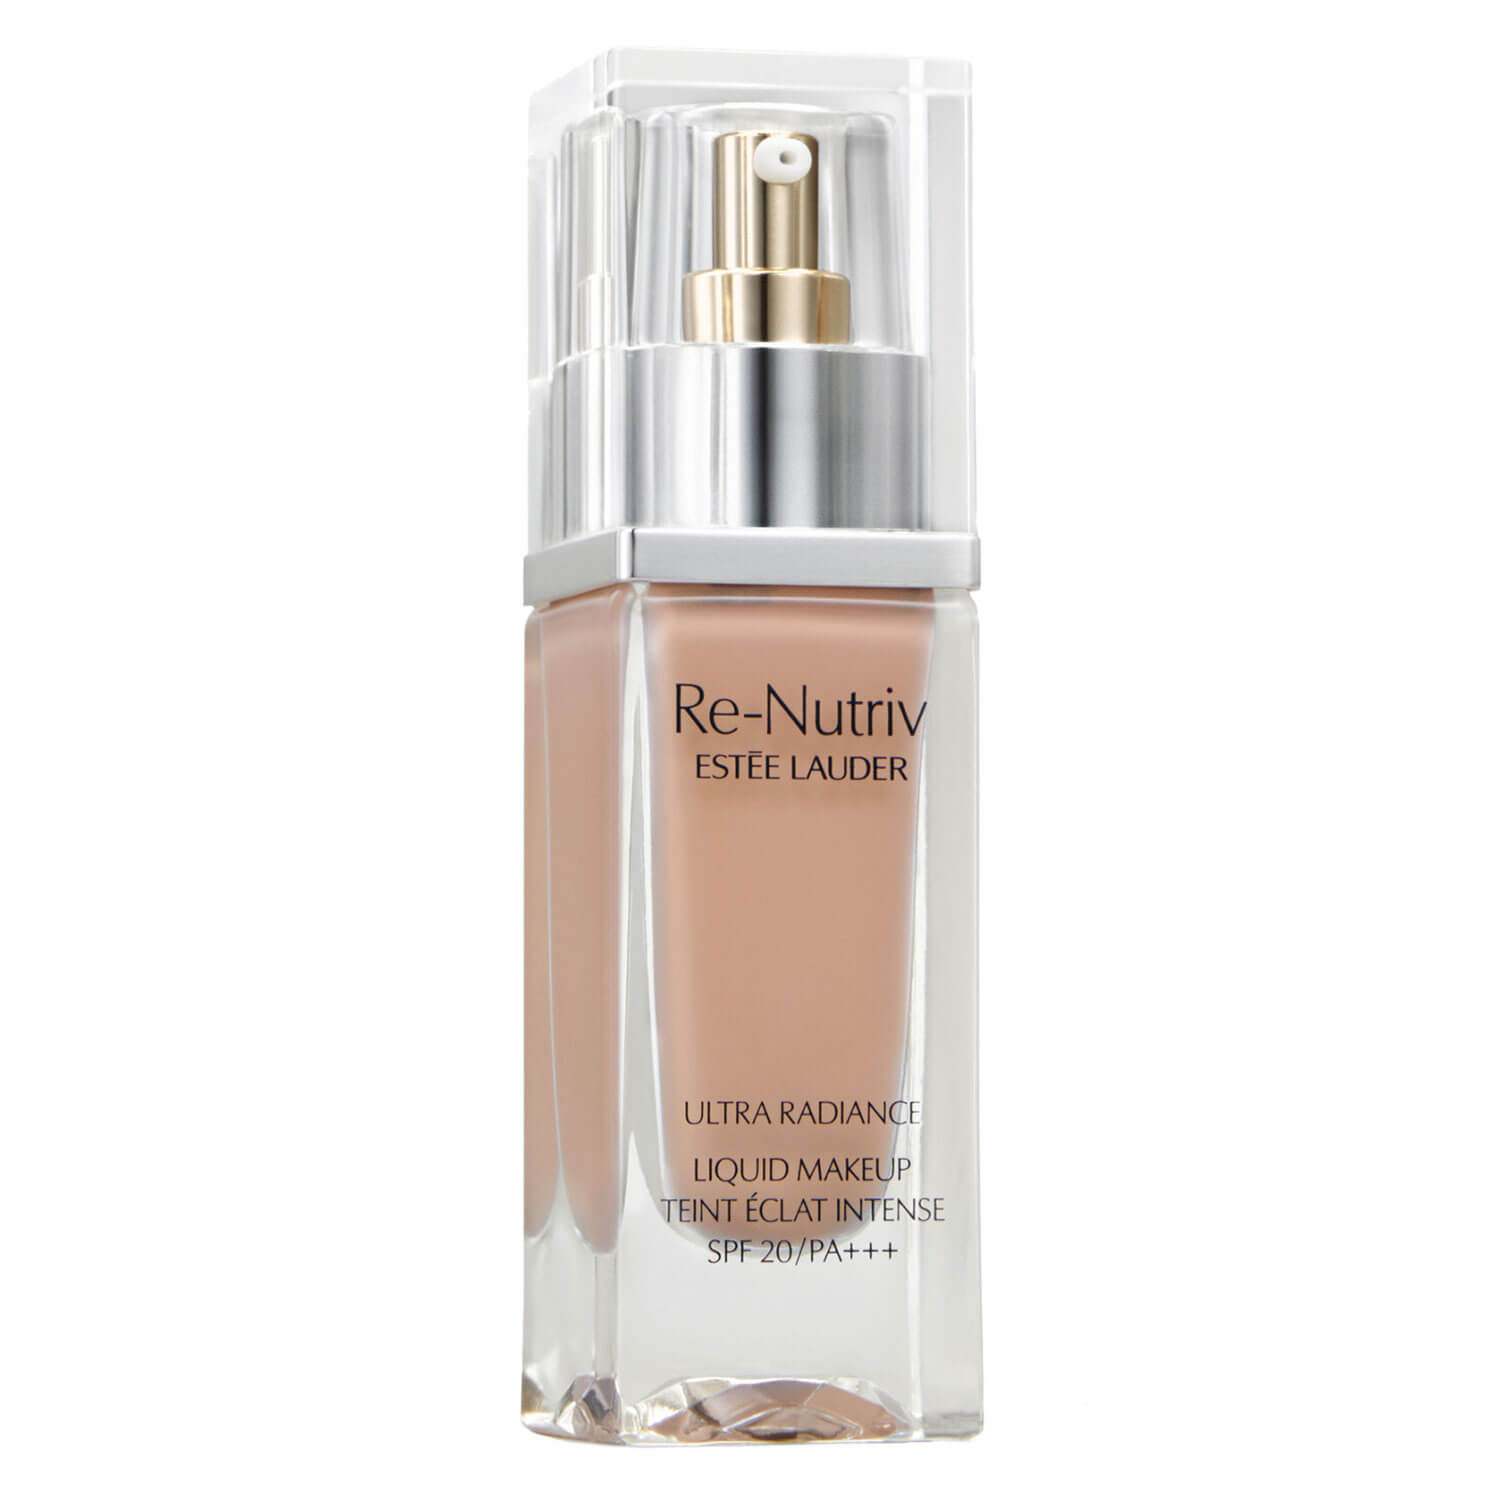 Re-Nutriv - Ultra Radiance Liquid Makeup SPF20 Pale Almond 2C2